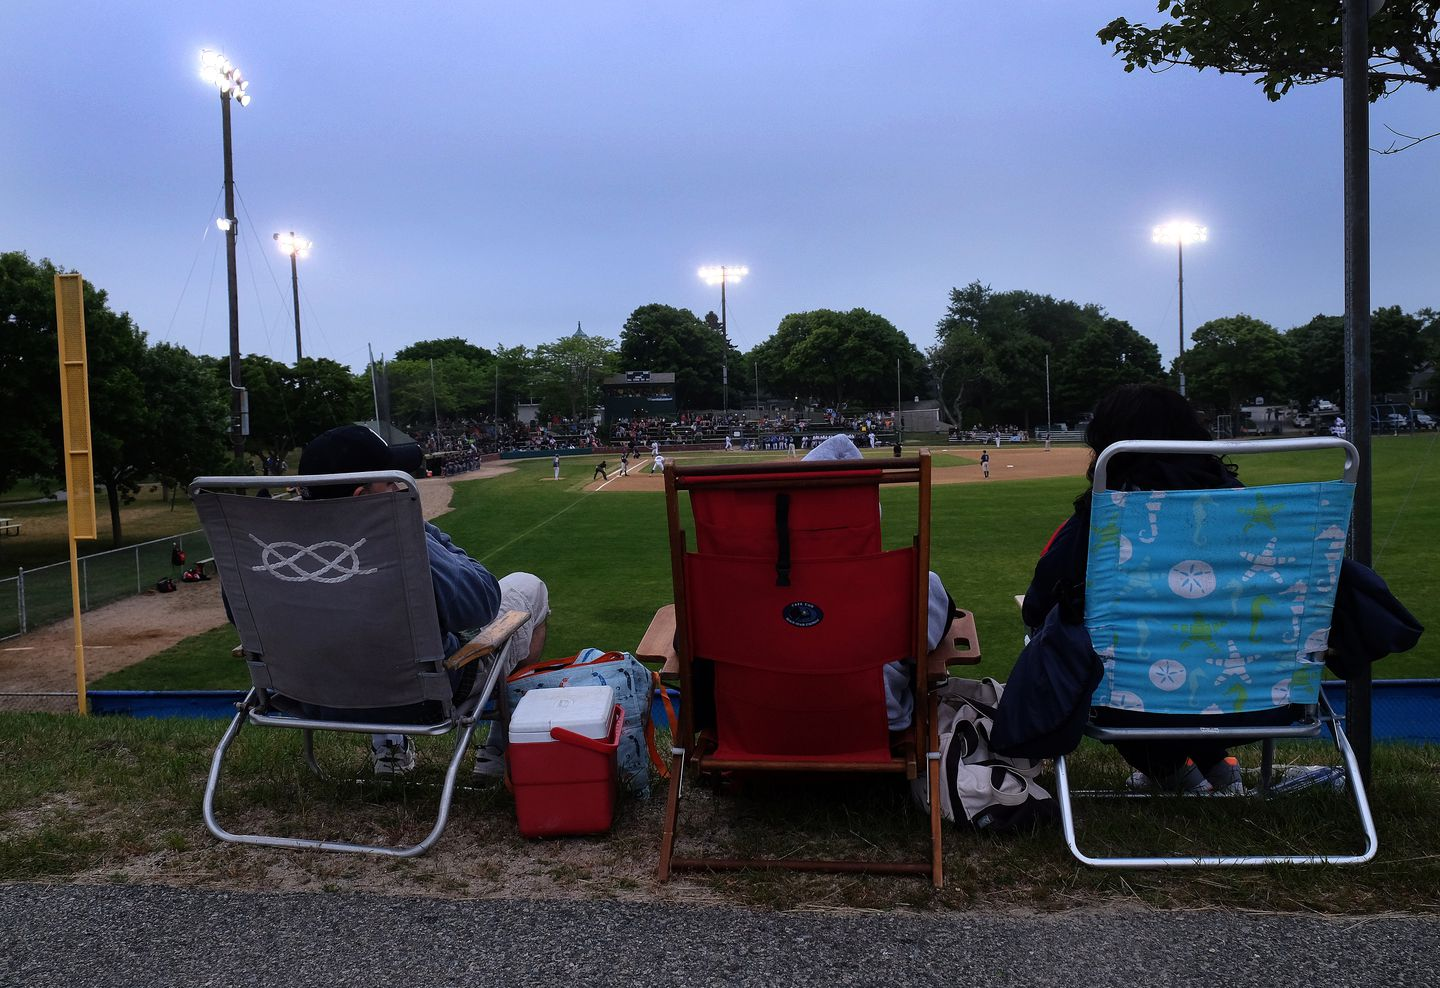 Cape Cod Baseball Where The Grass Is Real And The Price Is Right